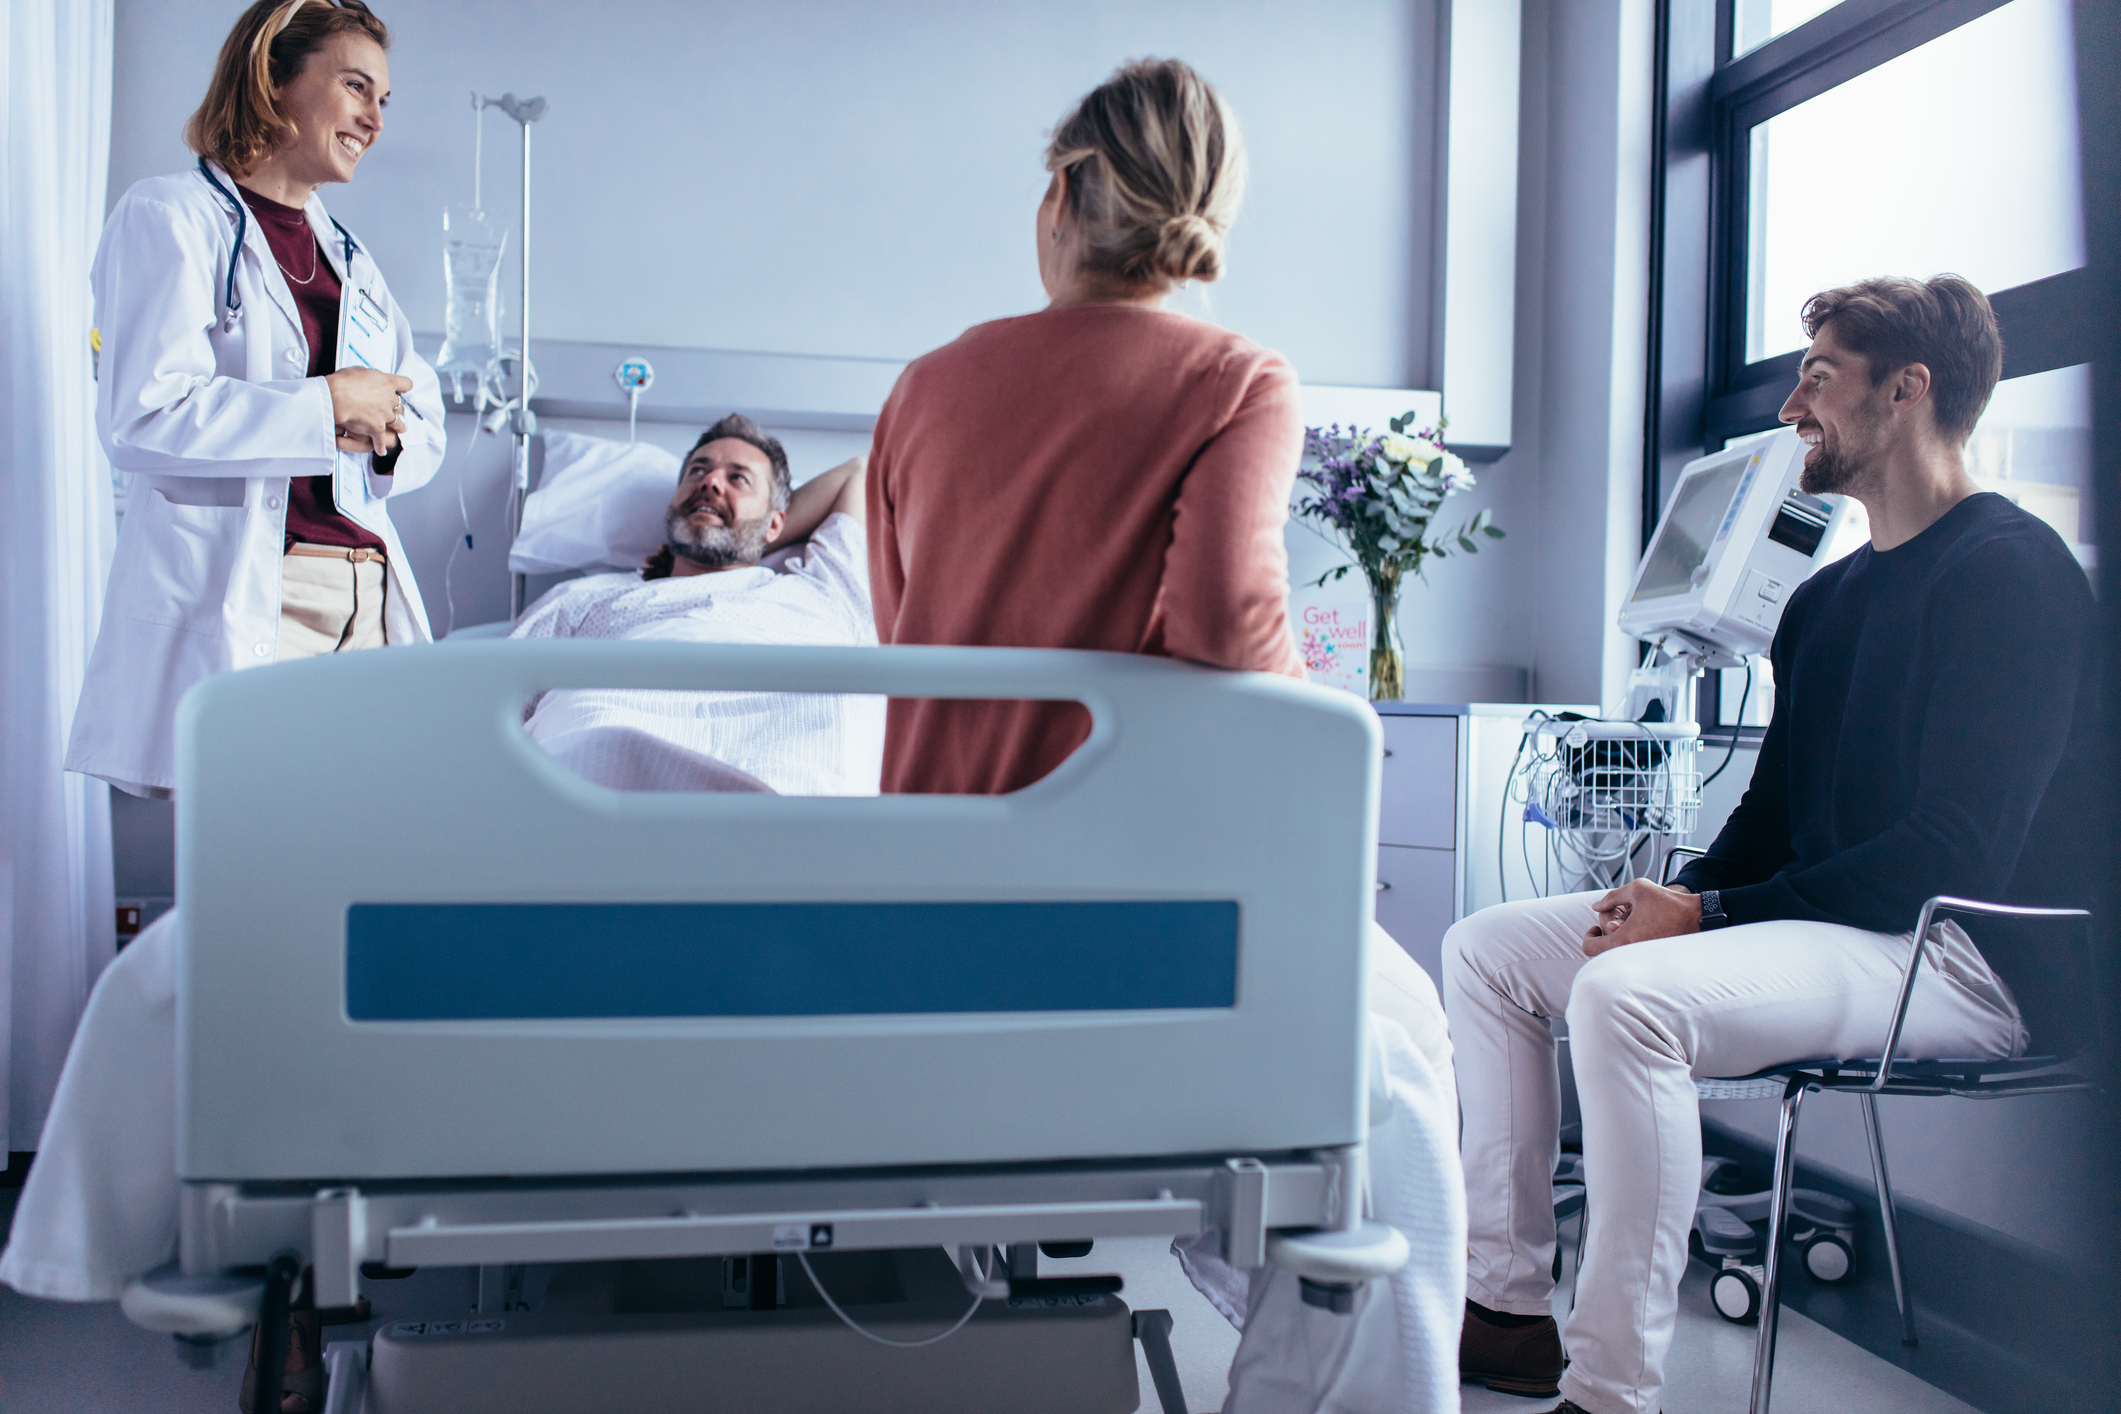 SUPPORTING PATIENTS - Improve patient access to medical services. Meet the wide spectrum of patient care needs. Provide timely access to specialists and ensure the availability of modern equipment and technologies are available.